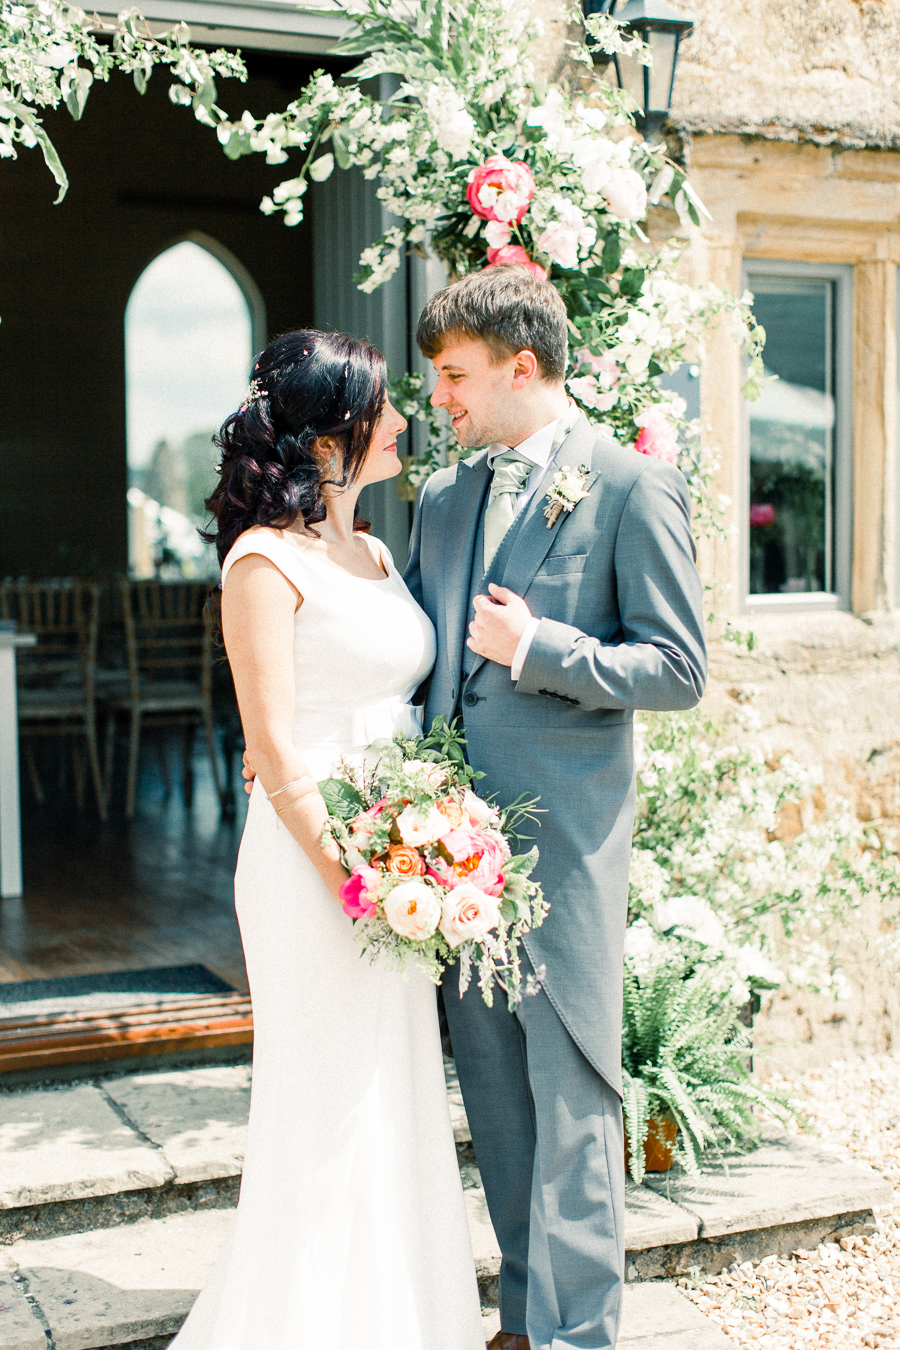 Jordans Courtyard rustic wedding styling ideas with images by Liz Baker Photography (28)